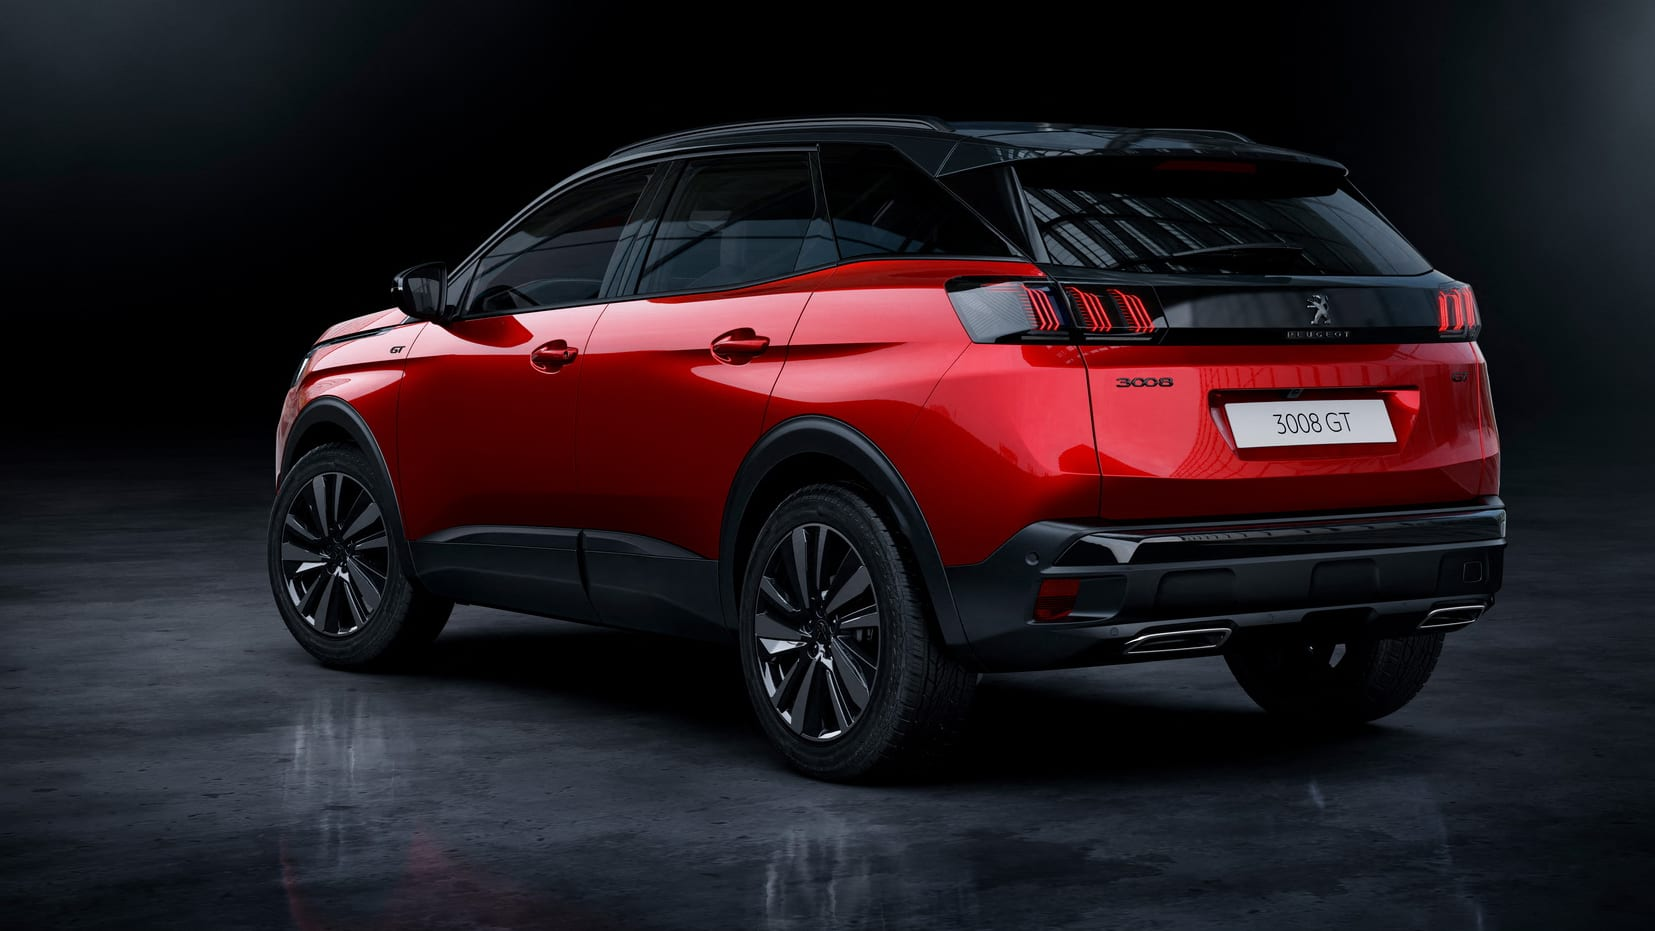 2021 Peugeot 3008 Suv Revealed Australian Timing Confirmed Update Gt Sport Variant Announced Caradvice